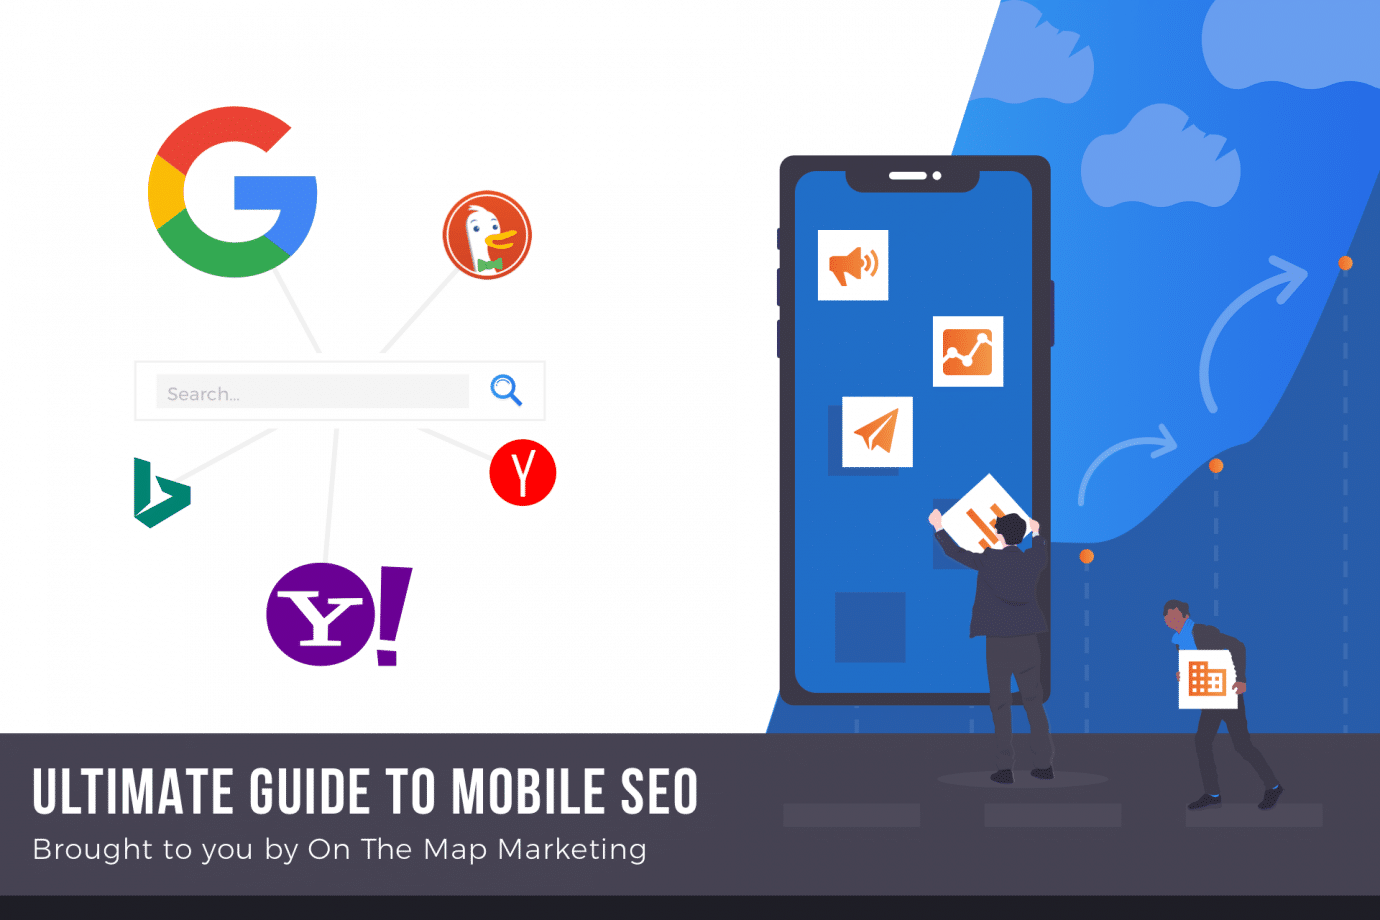 Mobile SEO: Ultimate Guide to Mobile Search Engine Optimization